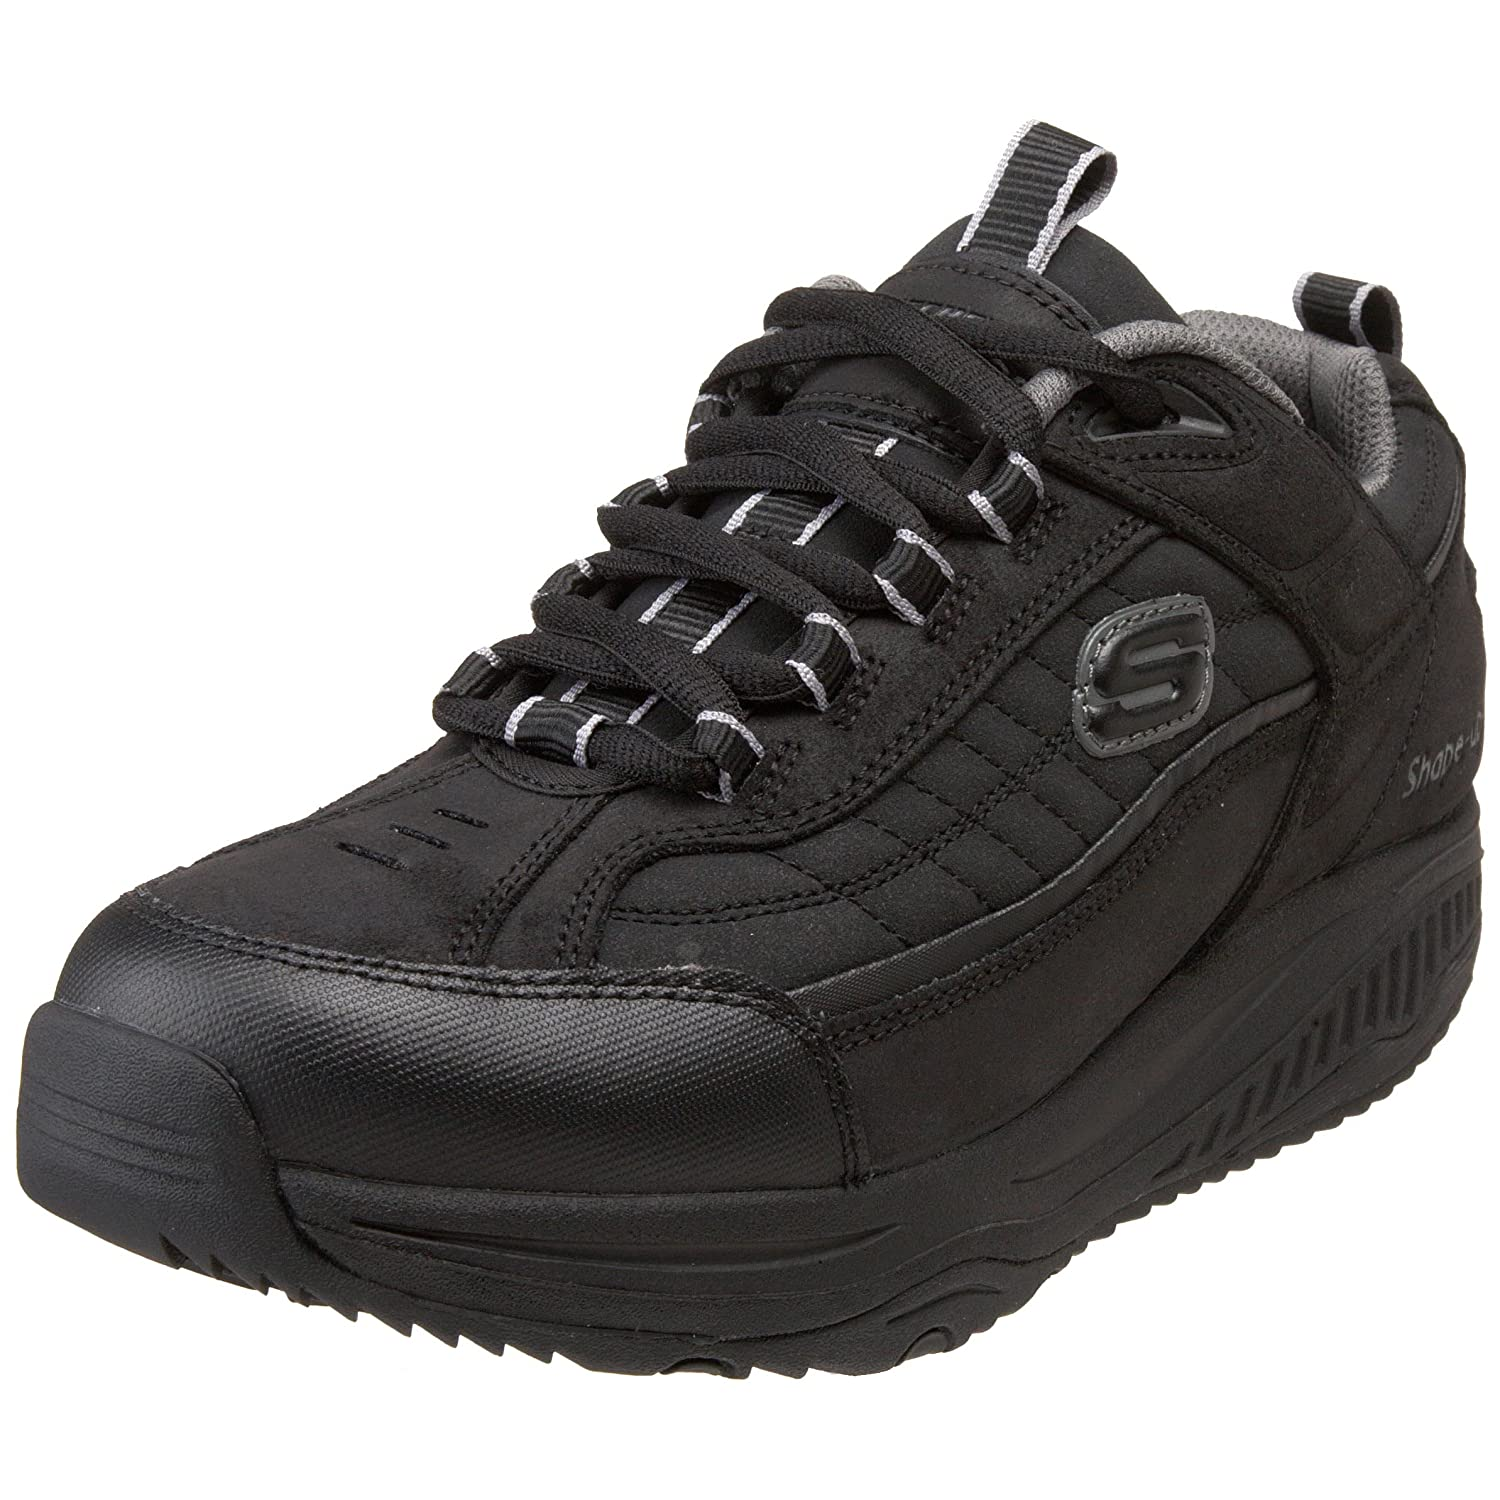 Zapatos Skechers Amazon Reino Unido QkXVKc